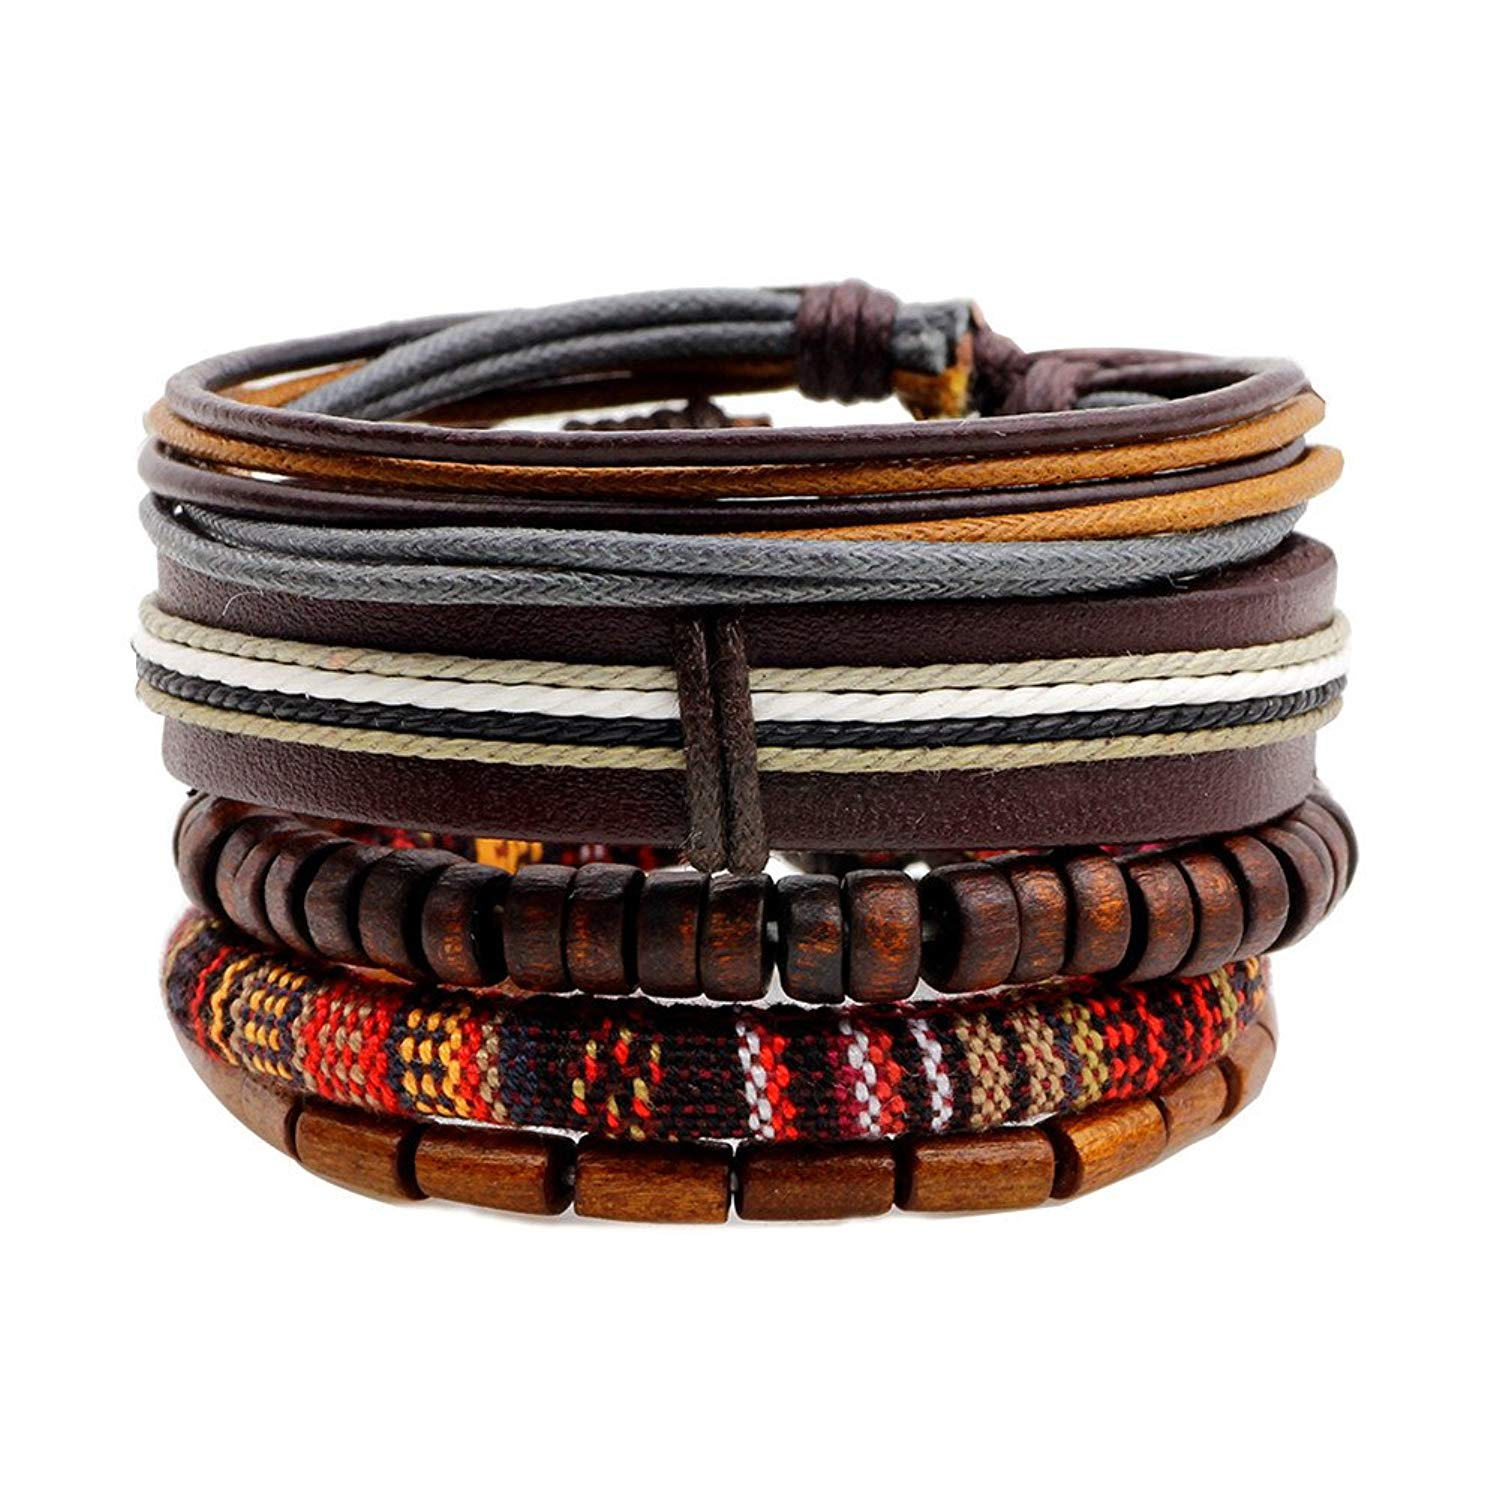 CF 5Pcs Braided Leather Wood Beads Multi Color Ropes Cuff Wrap Bracelet Bohemian for Men Women Adjustable